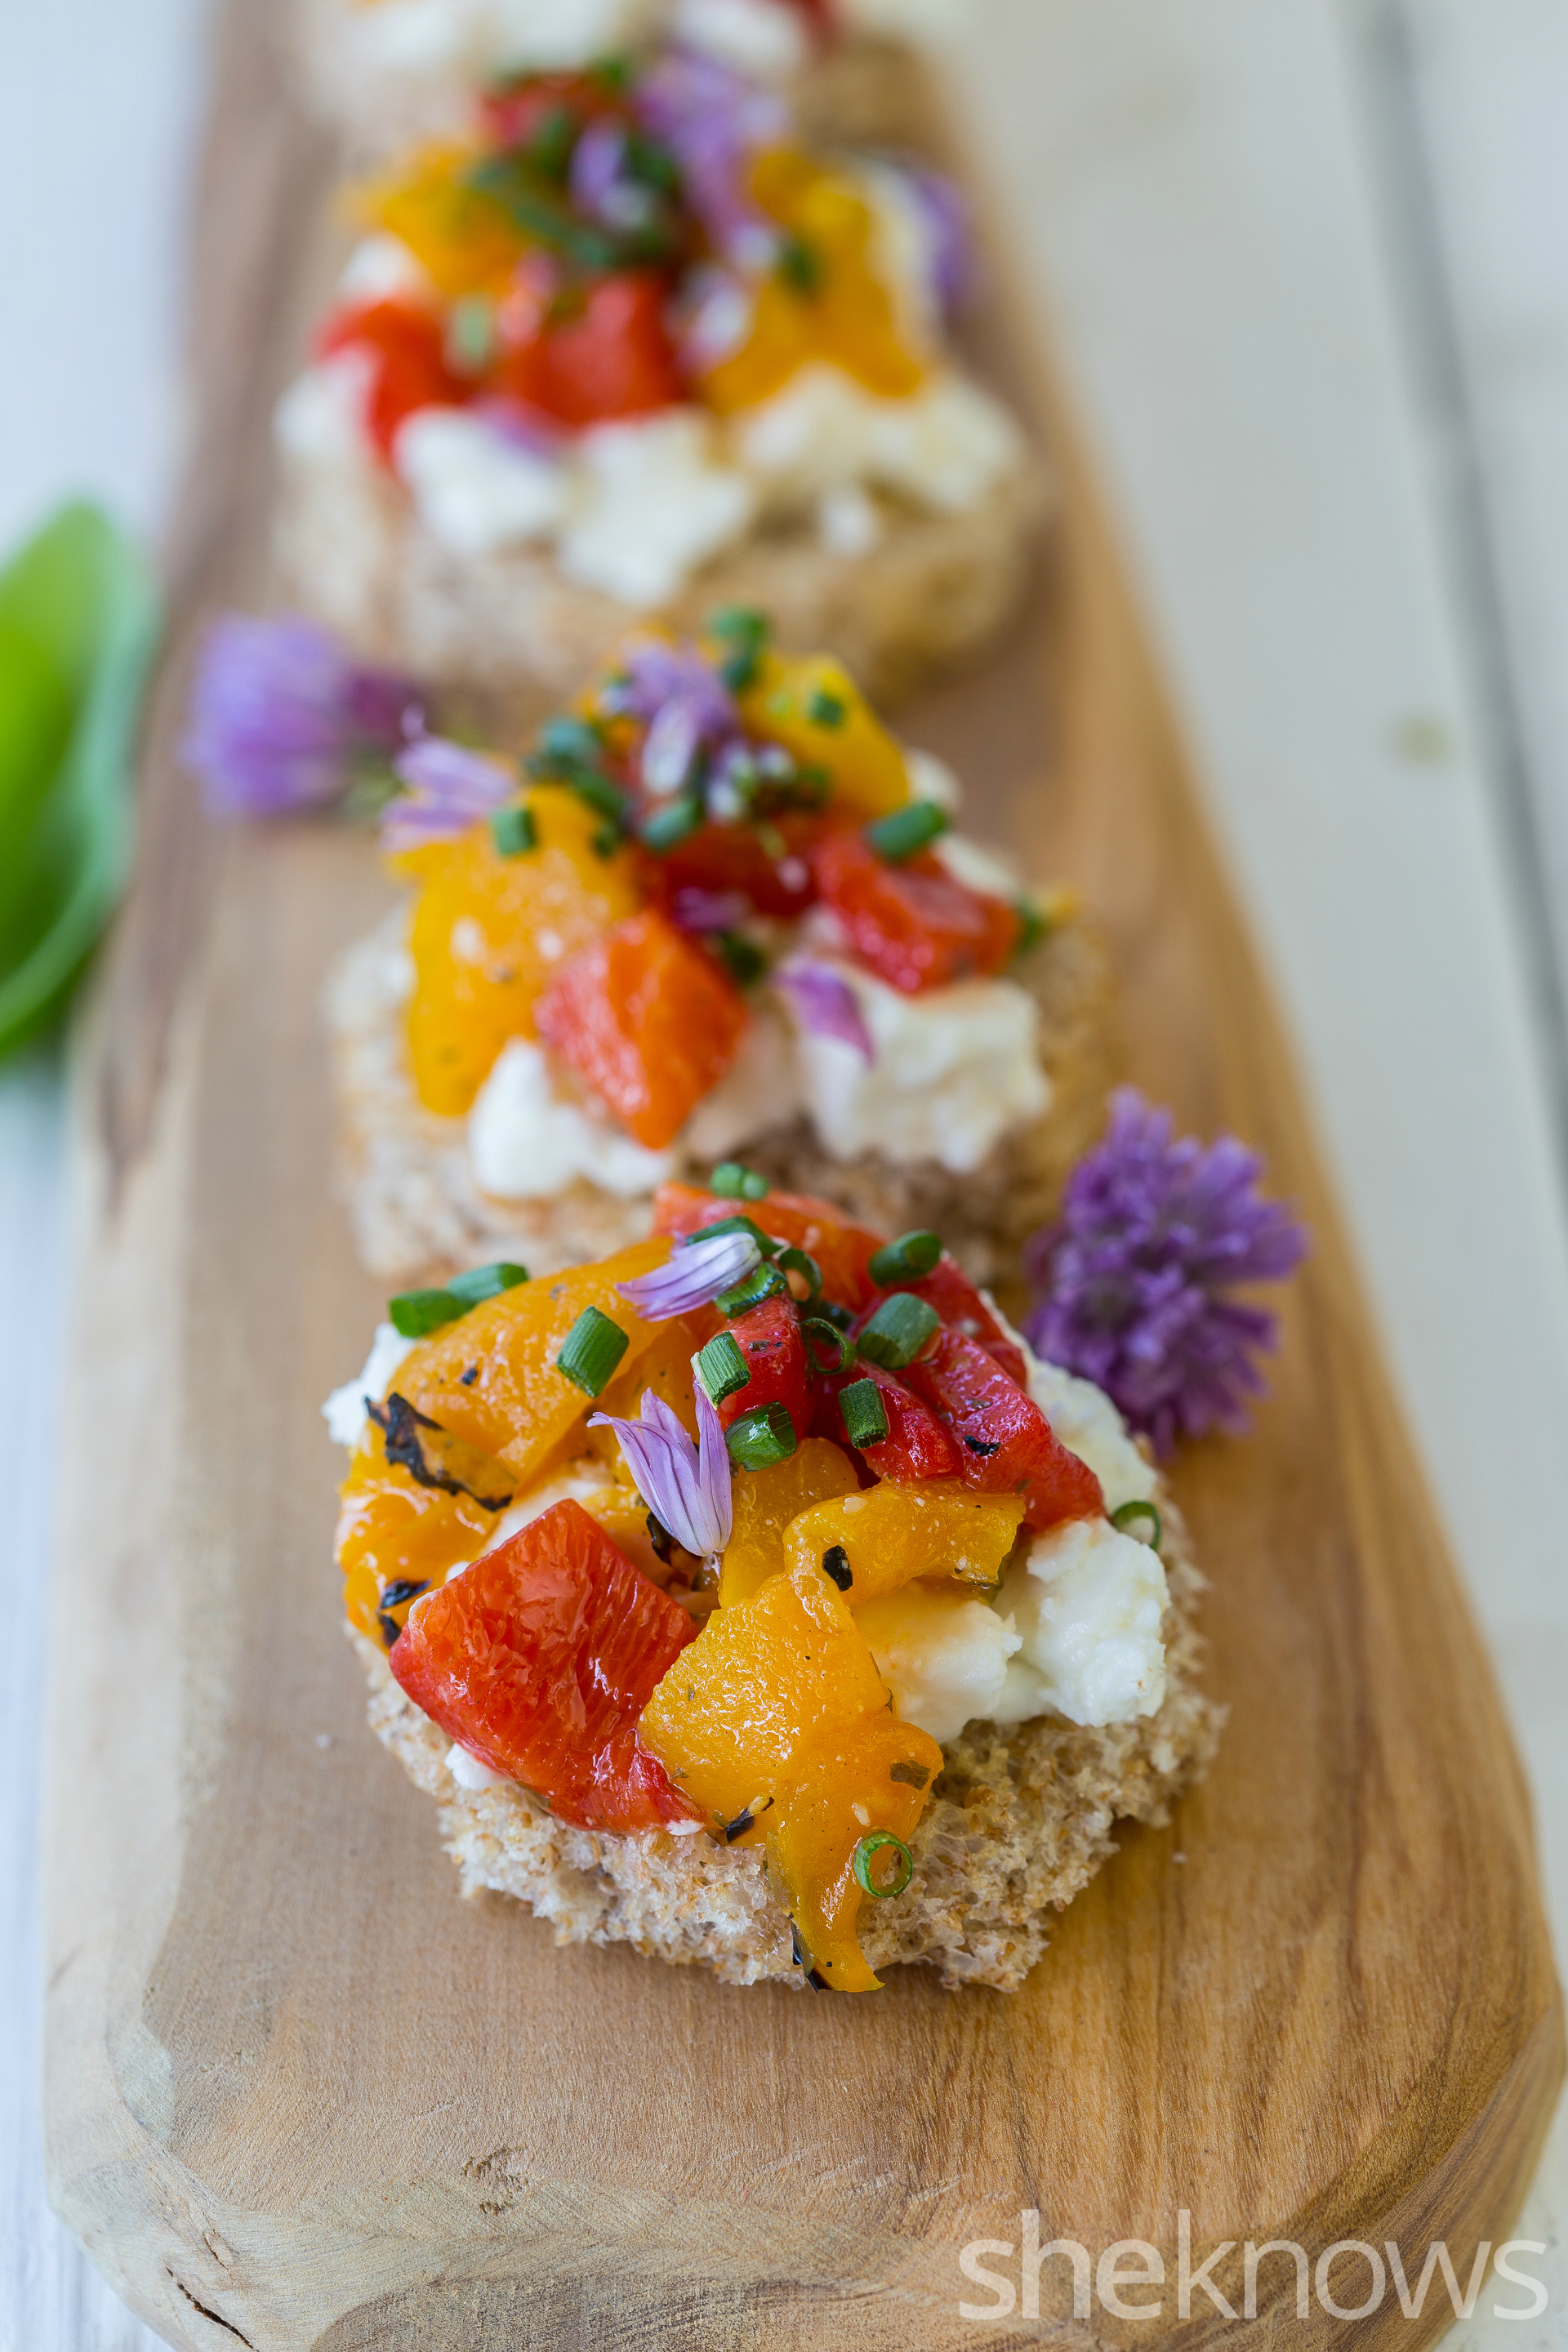 Feta, roasted peppers & chive tea sandwich